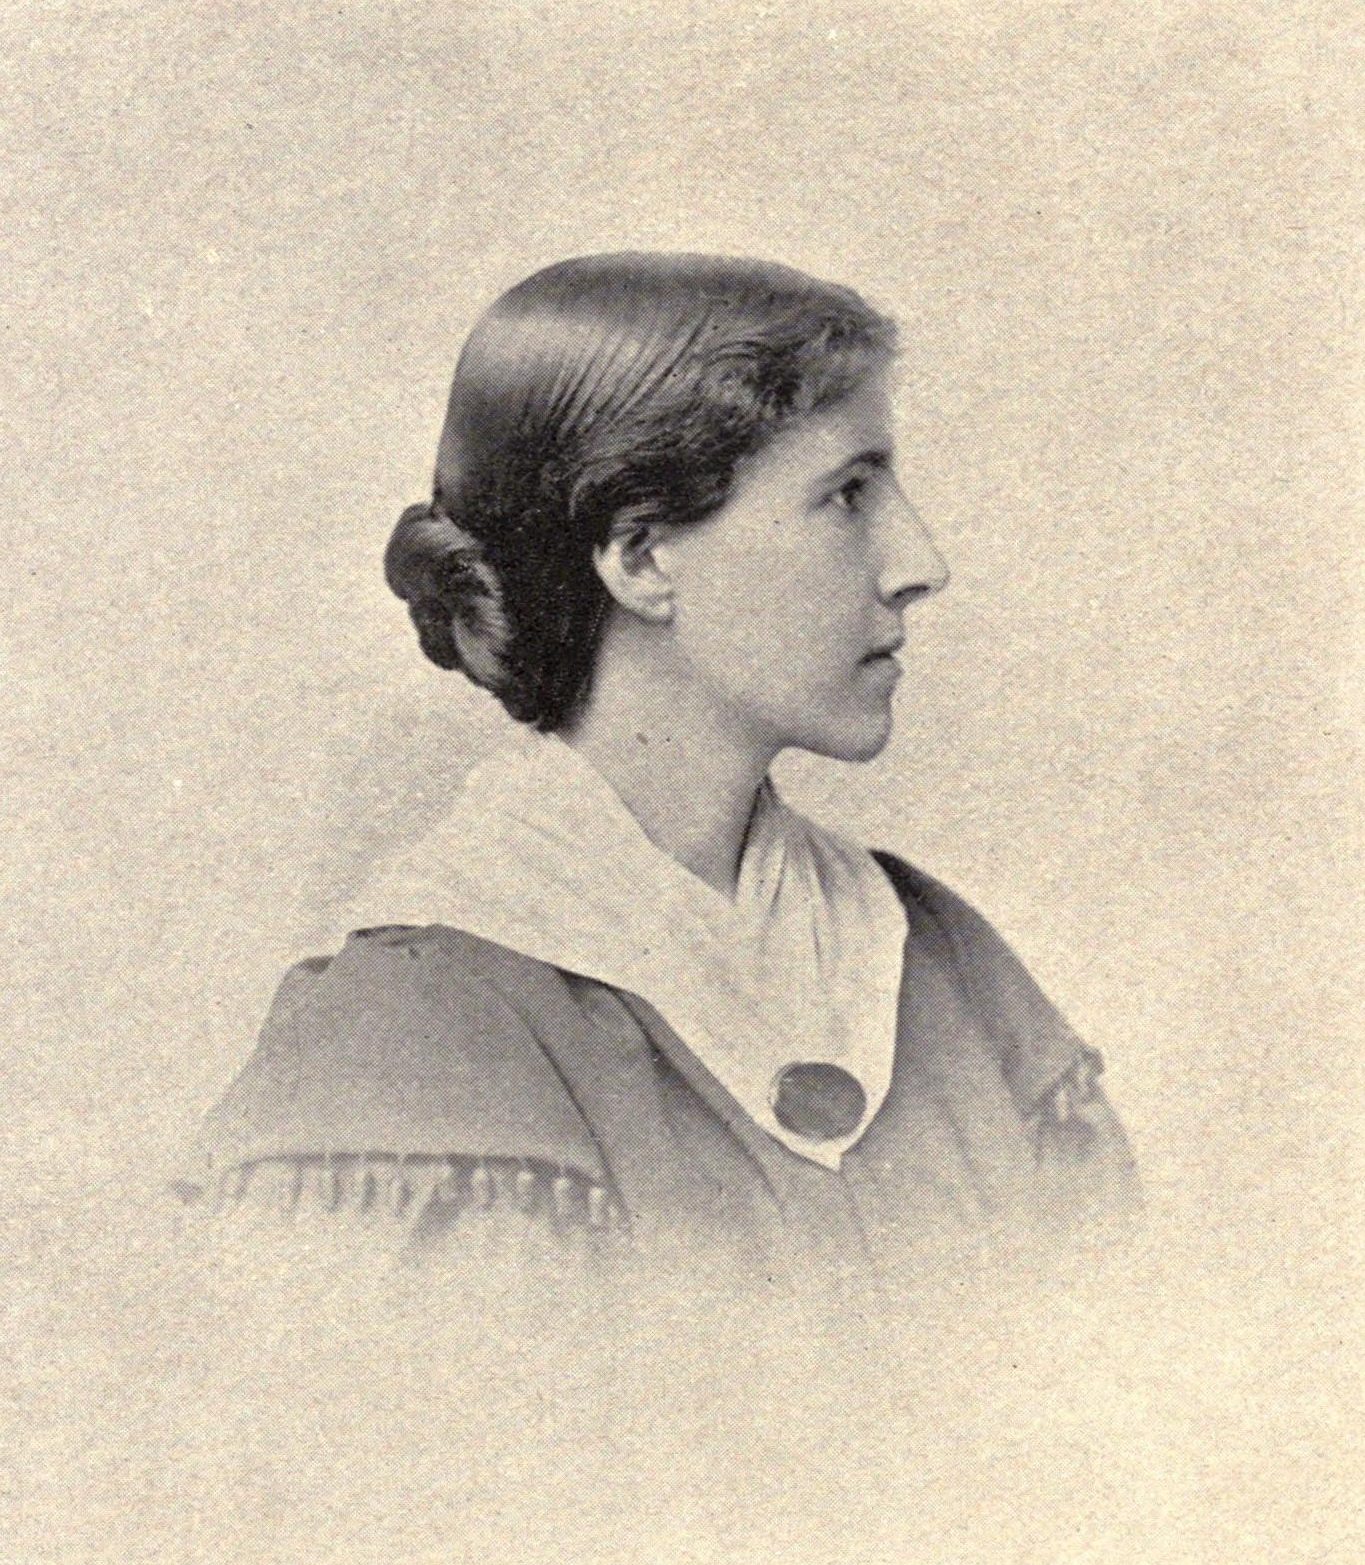 catharine beecher and charlotte perking gilman essay Writer, feminist and social reformer charlotte perkins gilman wrote the short story 'the yellow wall-paper' learn more at biographycom.